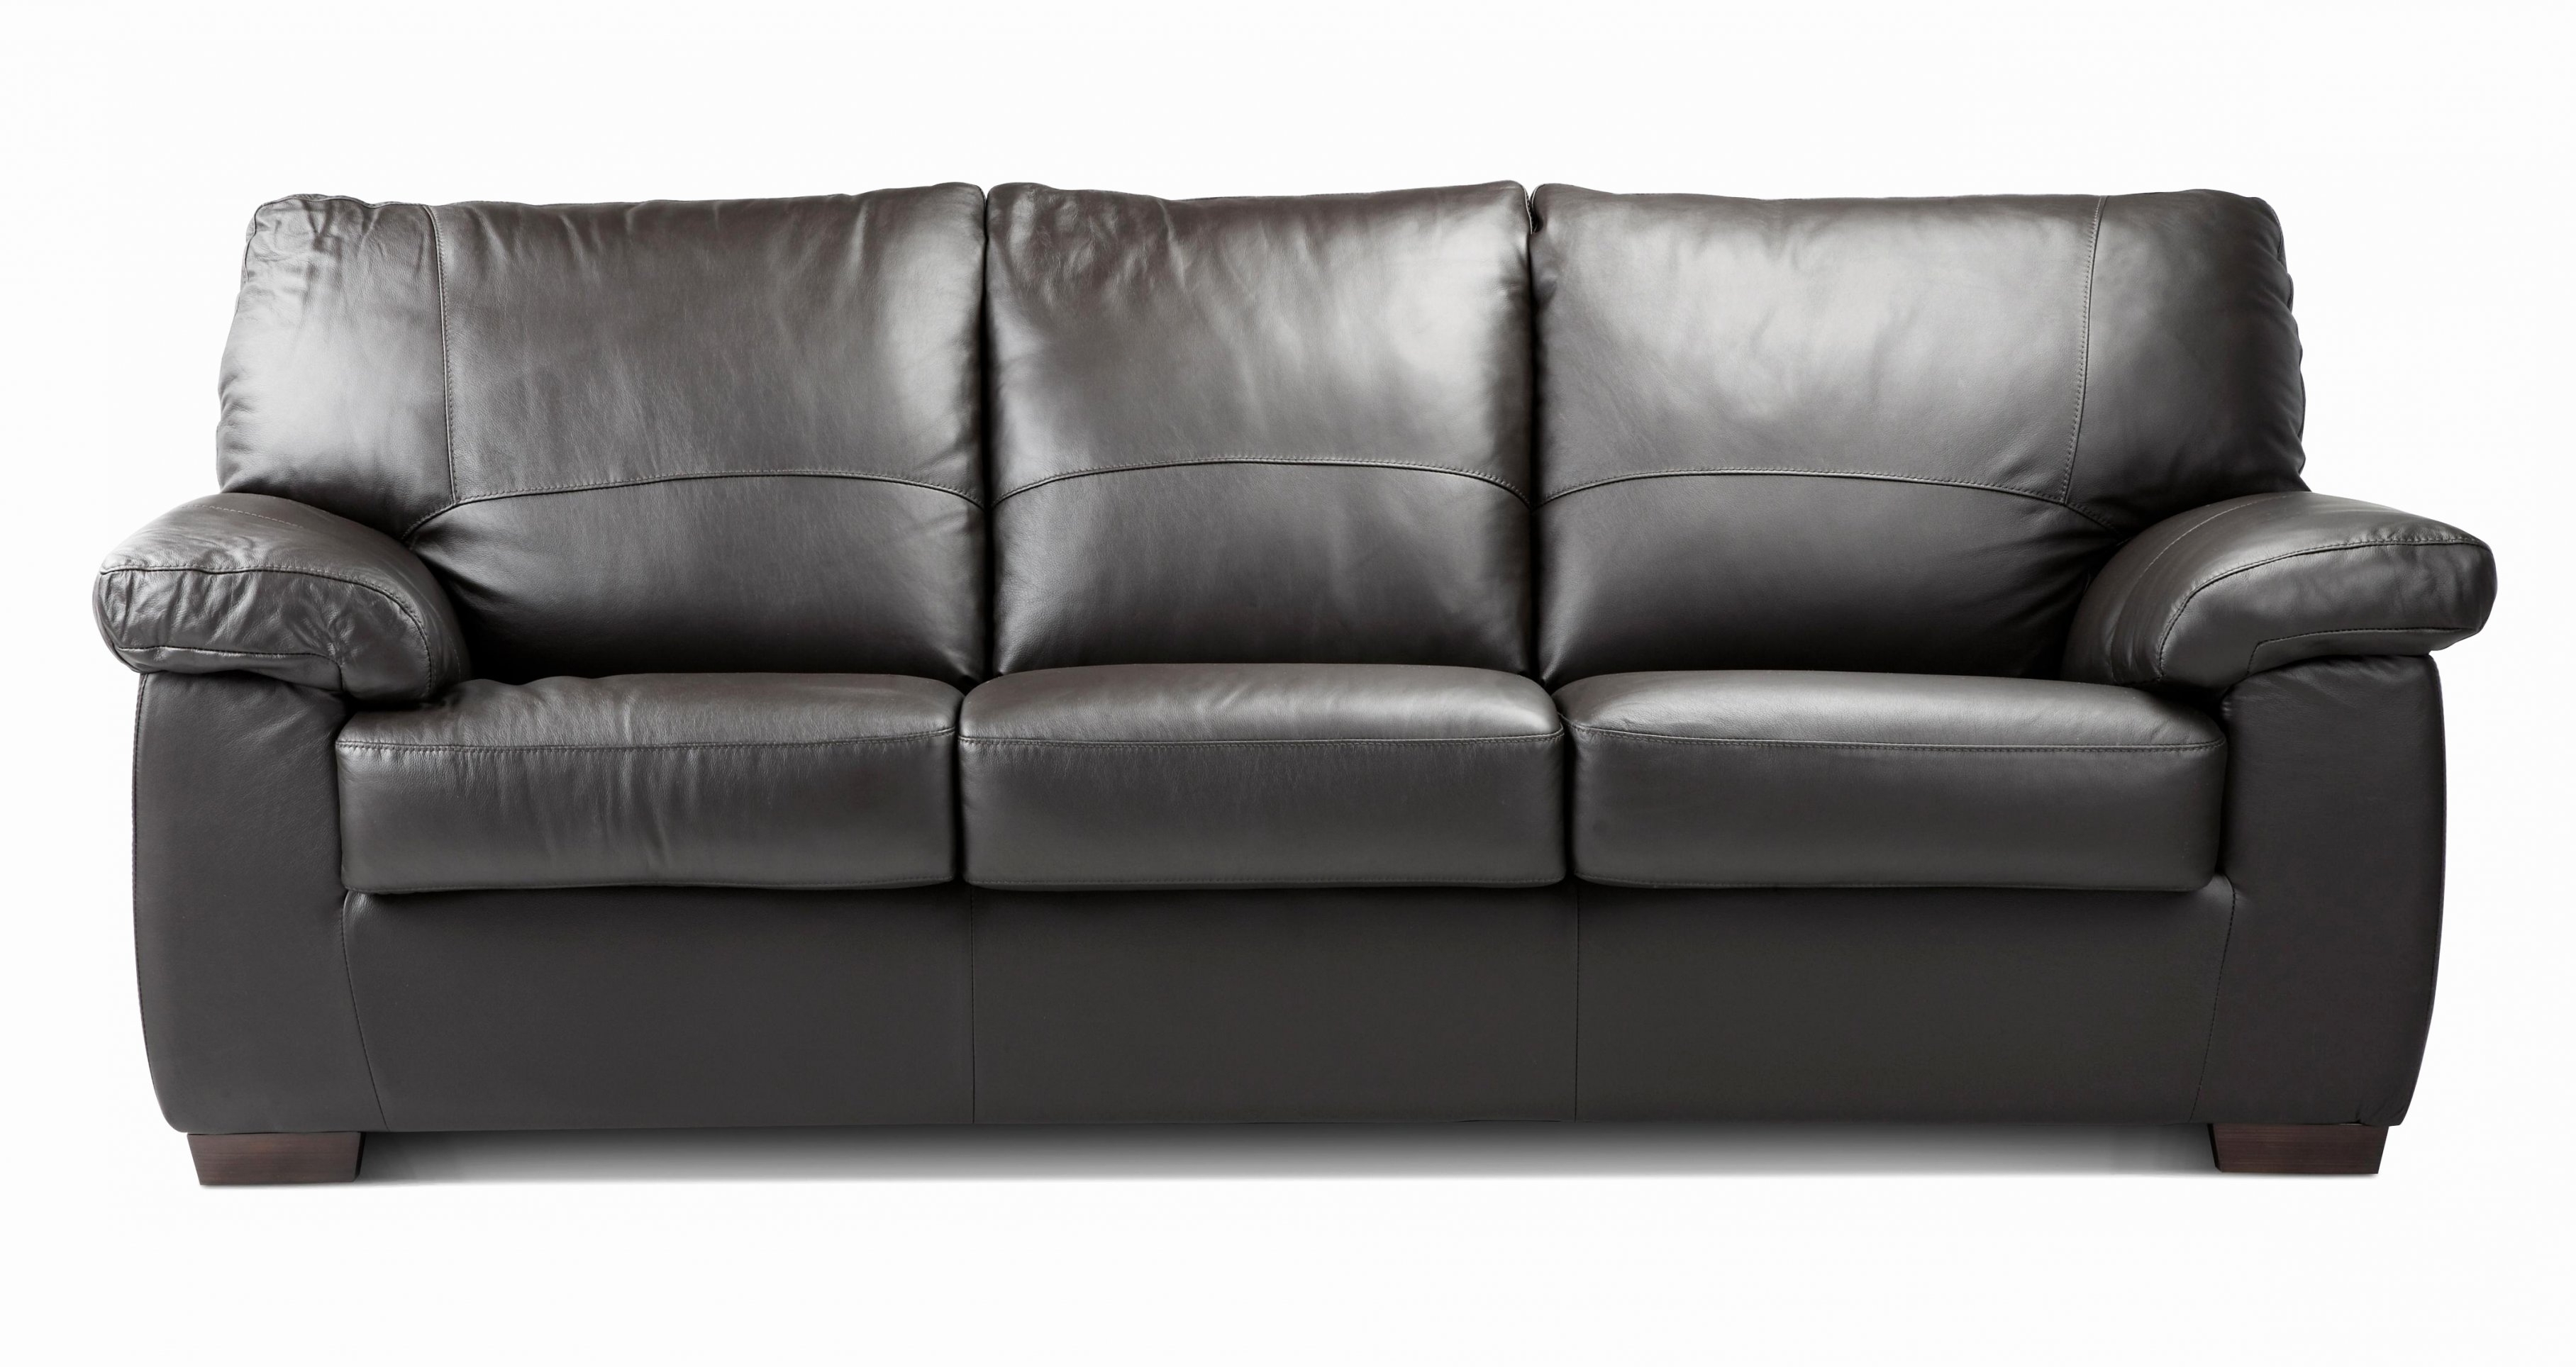 Most Popular 3 Seater Leather Sofas With Regard To 3 Seat Black Leather Sofa (View 13 of 20)